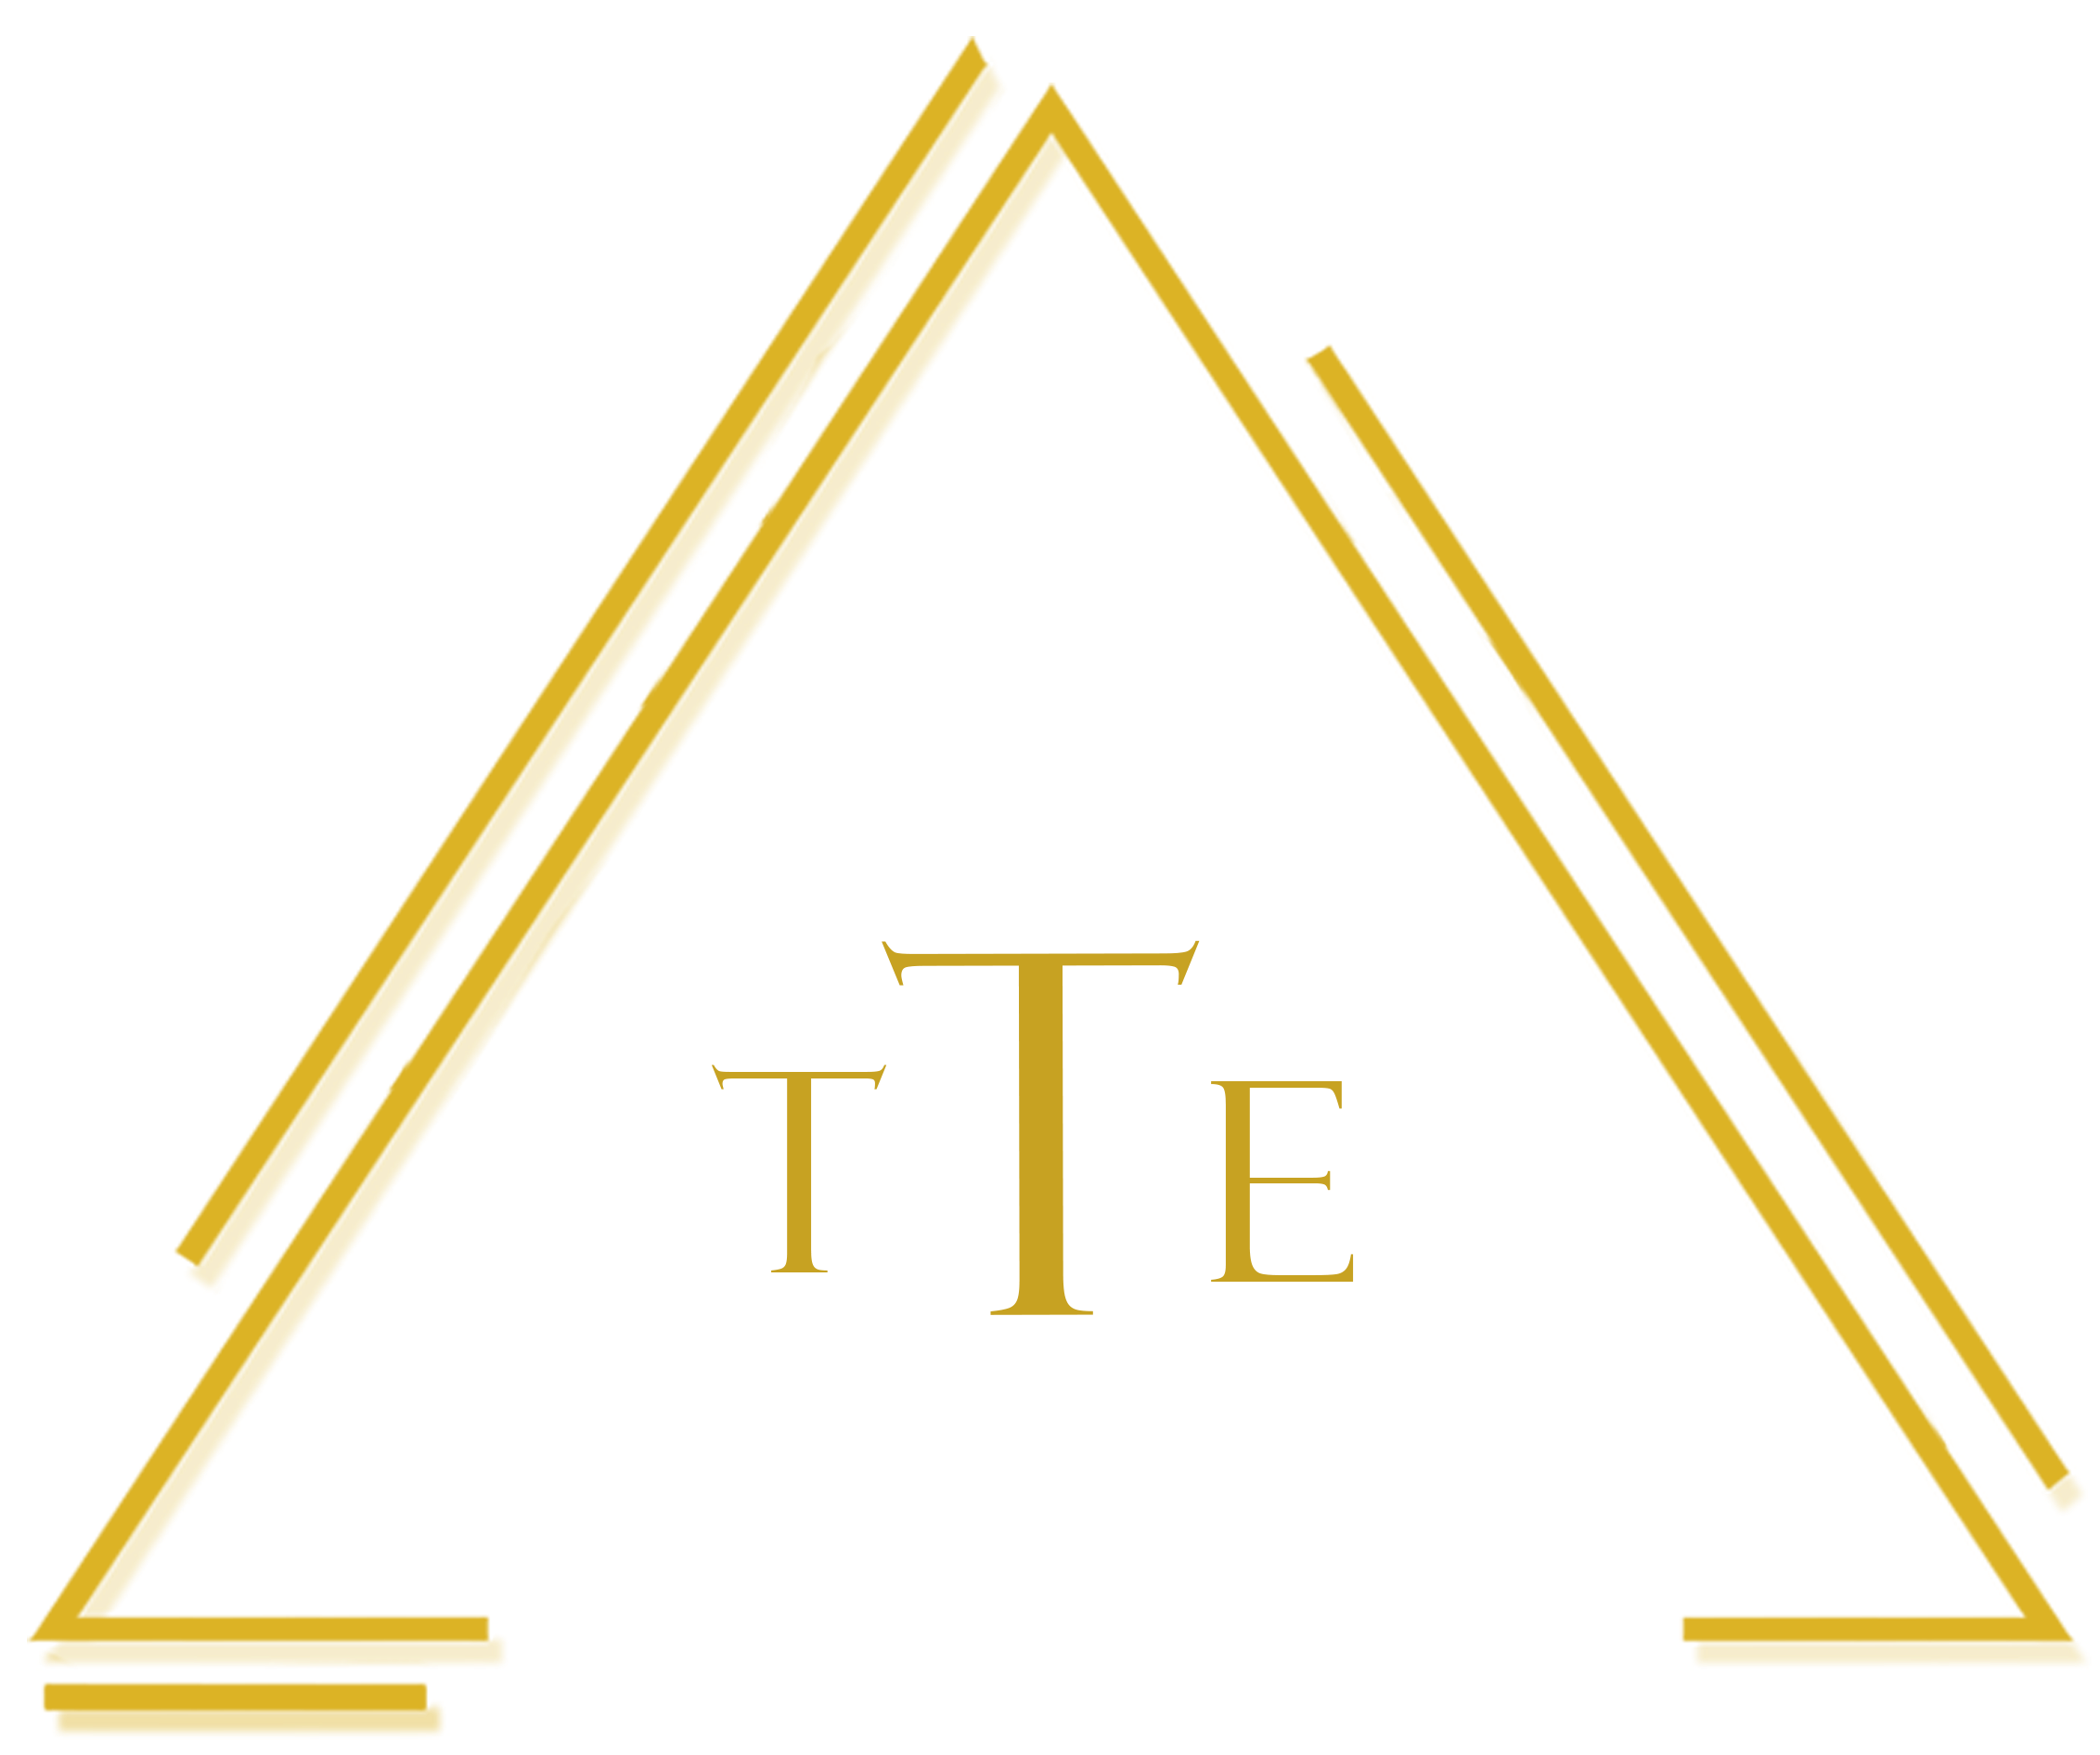 TTE Gold - Image with Initials cropped